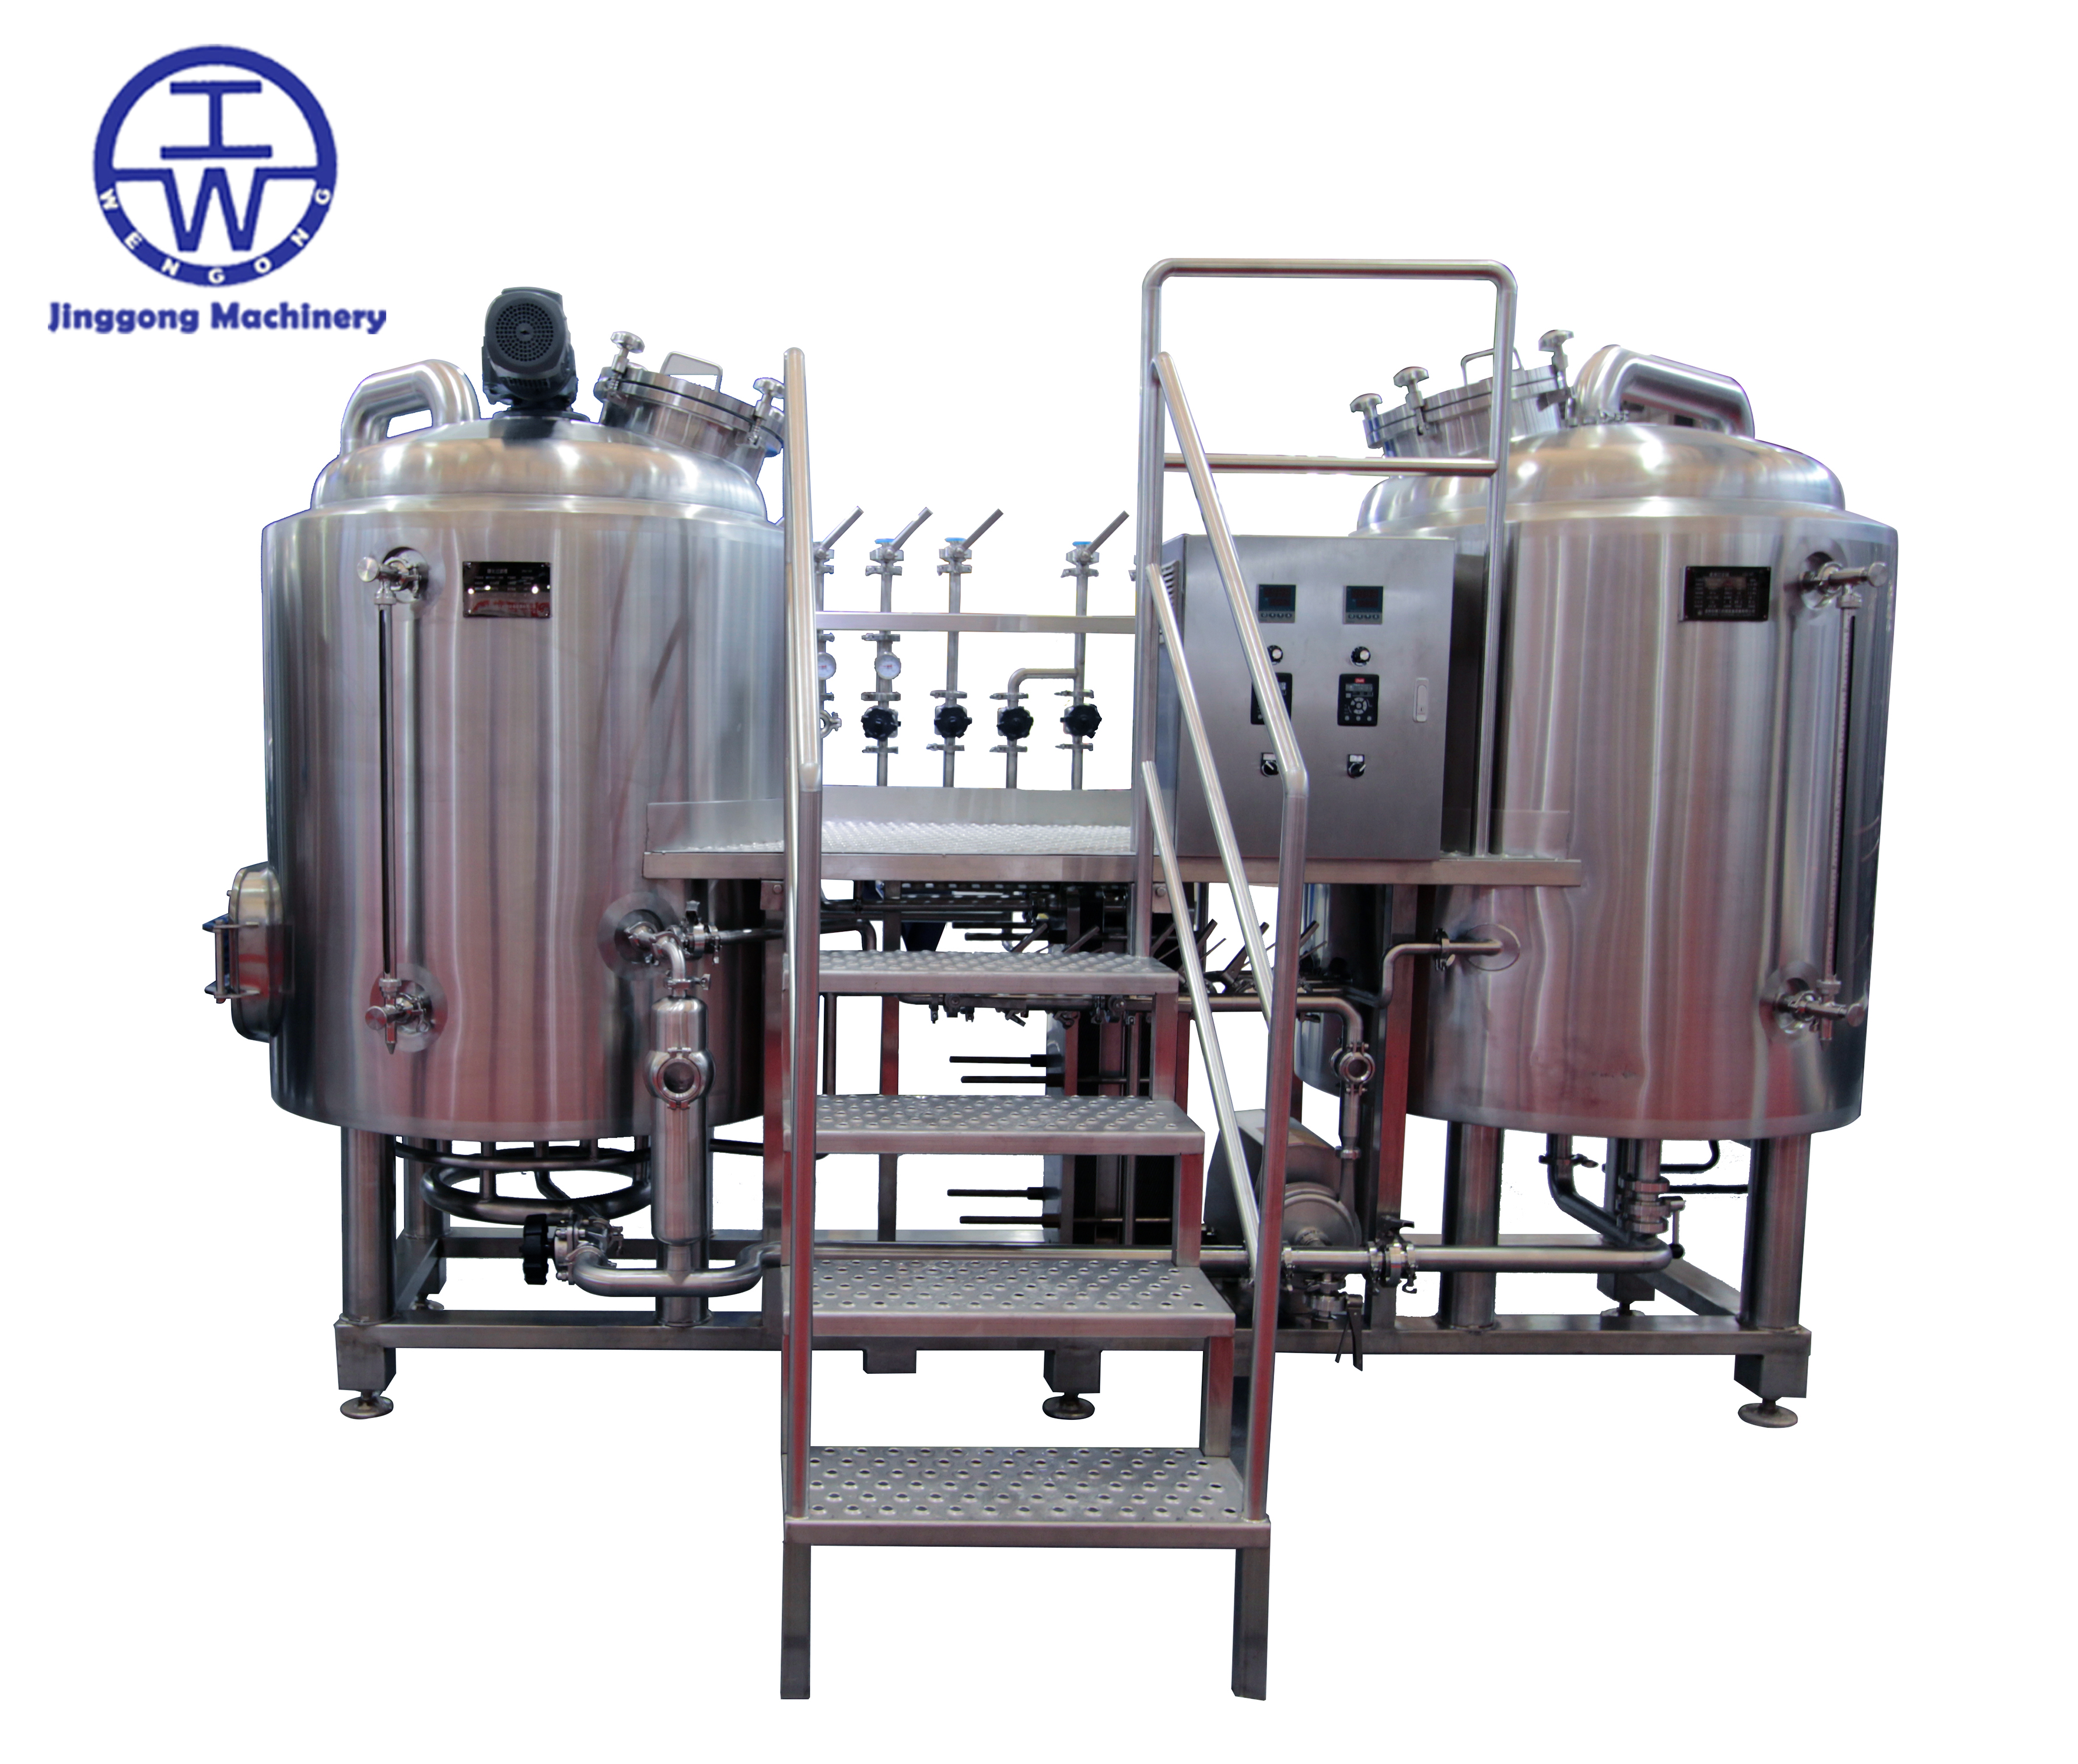 3 Barrel Low Cost Used Beer Brewery Equipment System For Making Craft Beer